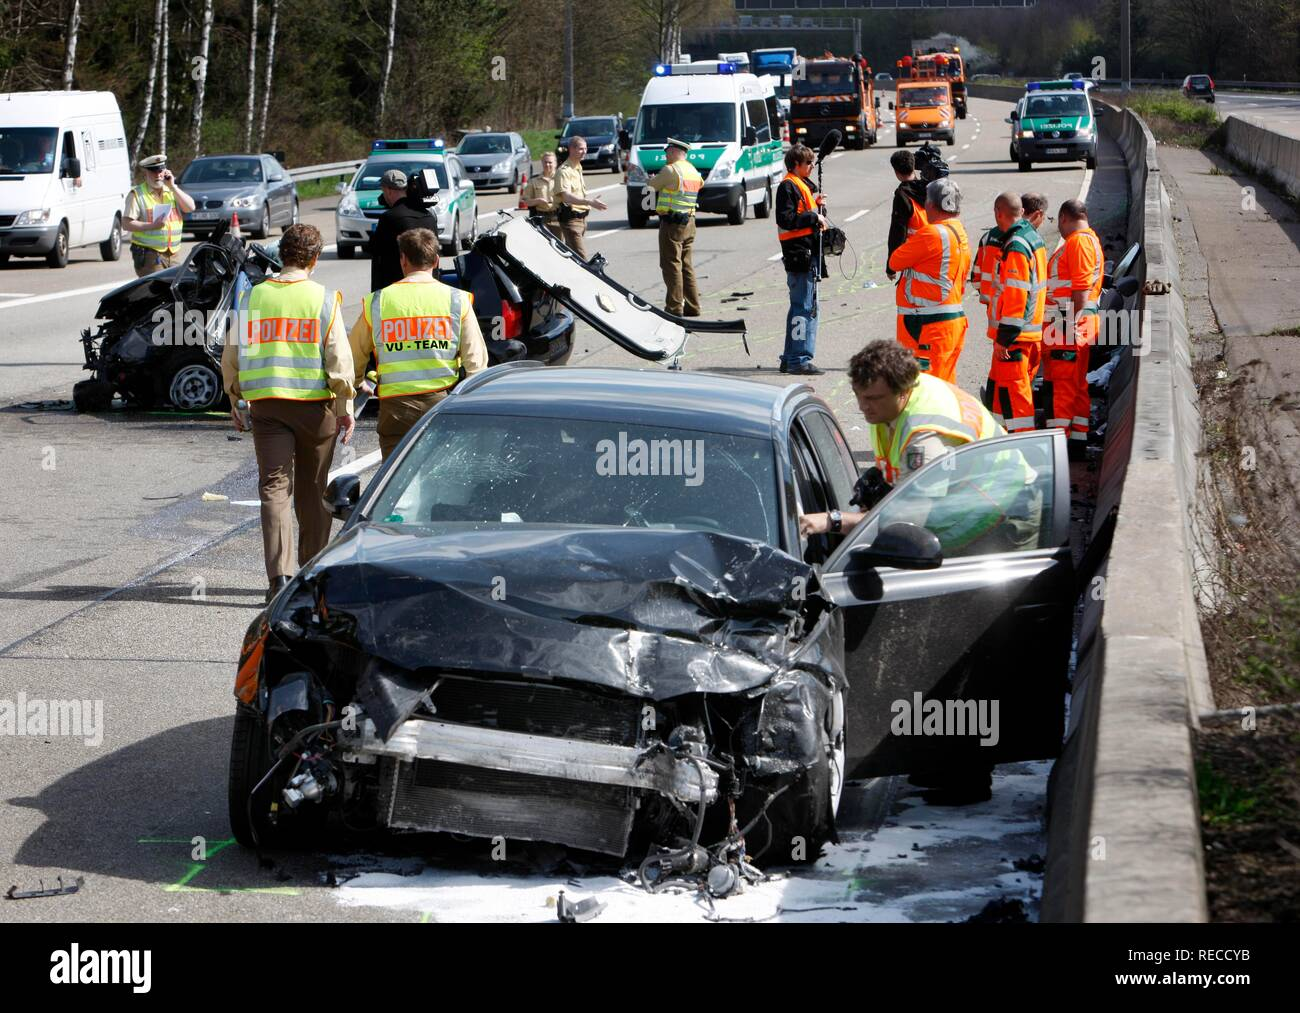 Traffic accident, 5 people hurt, on A1 motorway at the